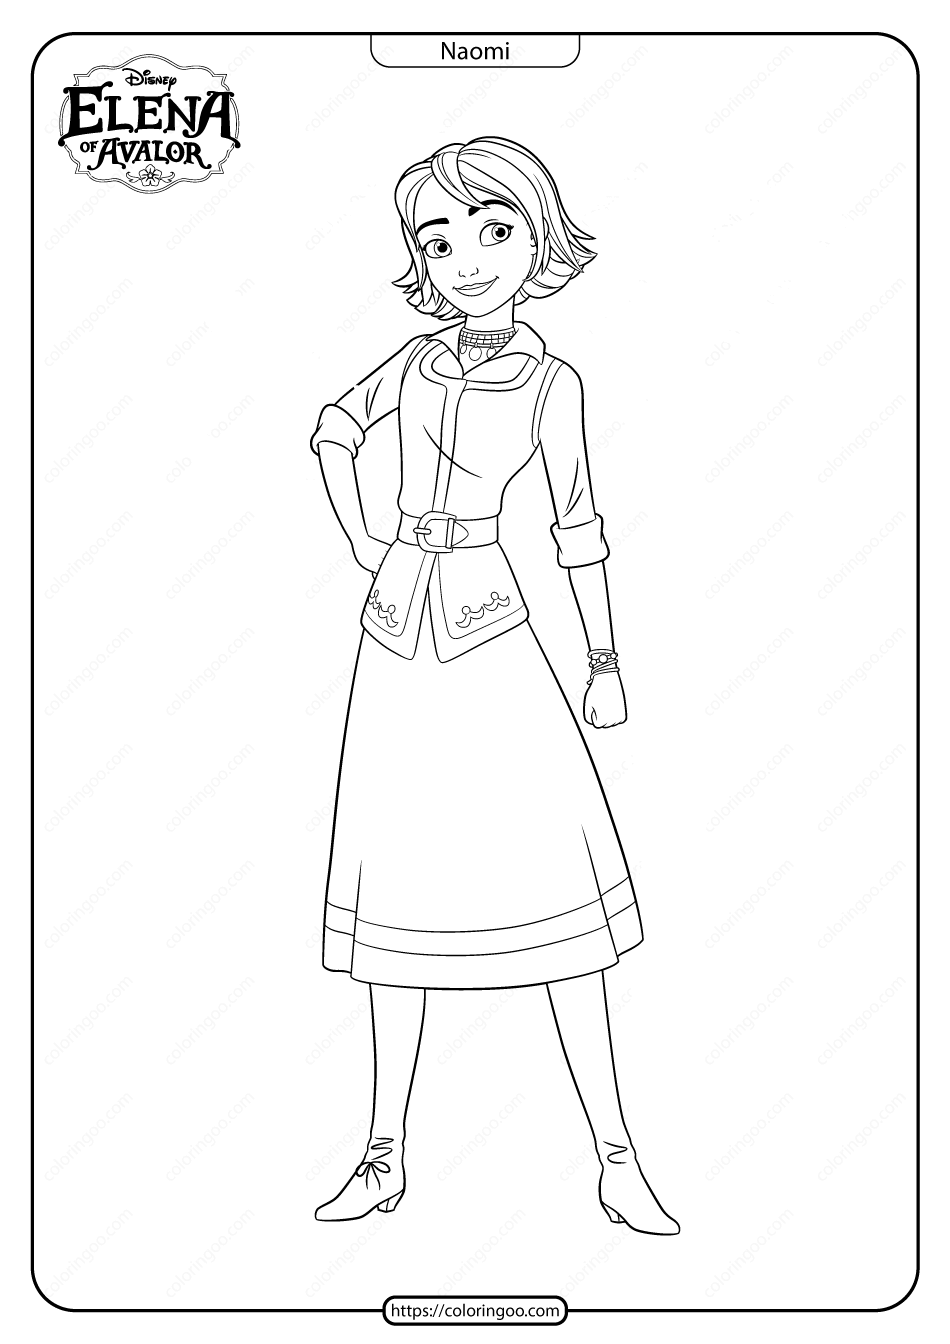 Printable Elena Of Avalor Naomi Coloring Pages Disney Character Drawings Coloring Pages Character Drawing